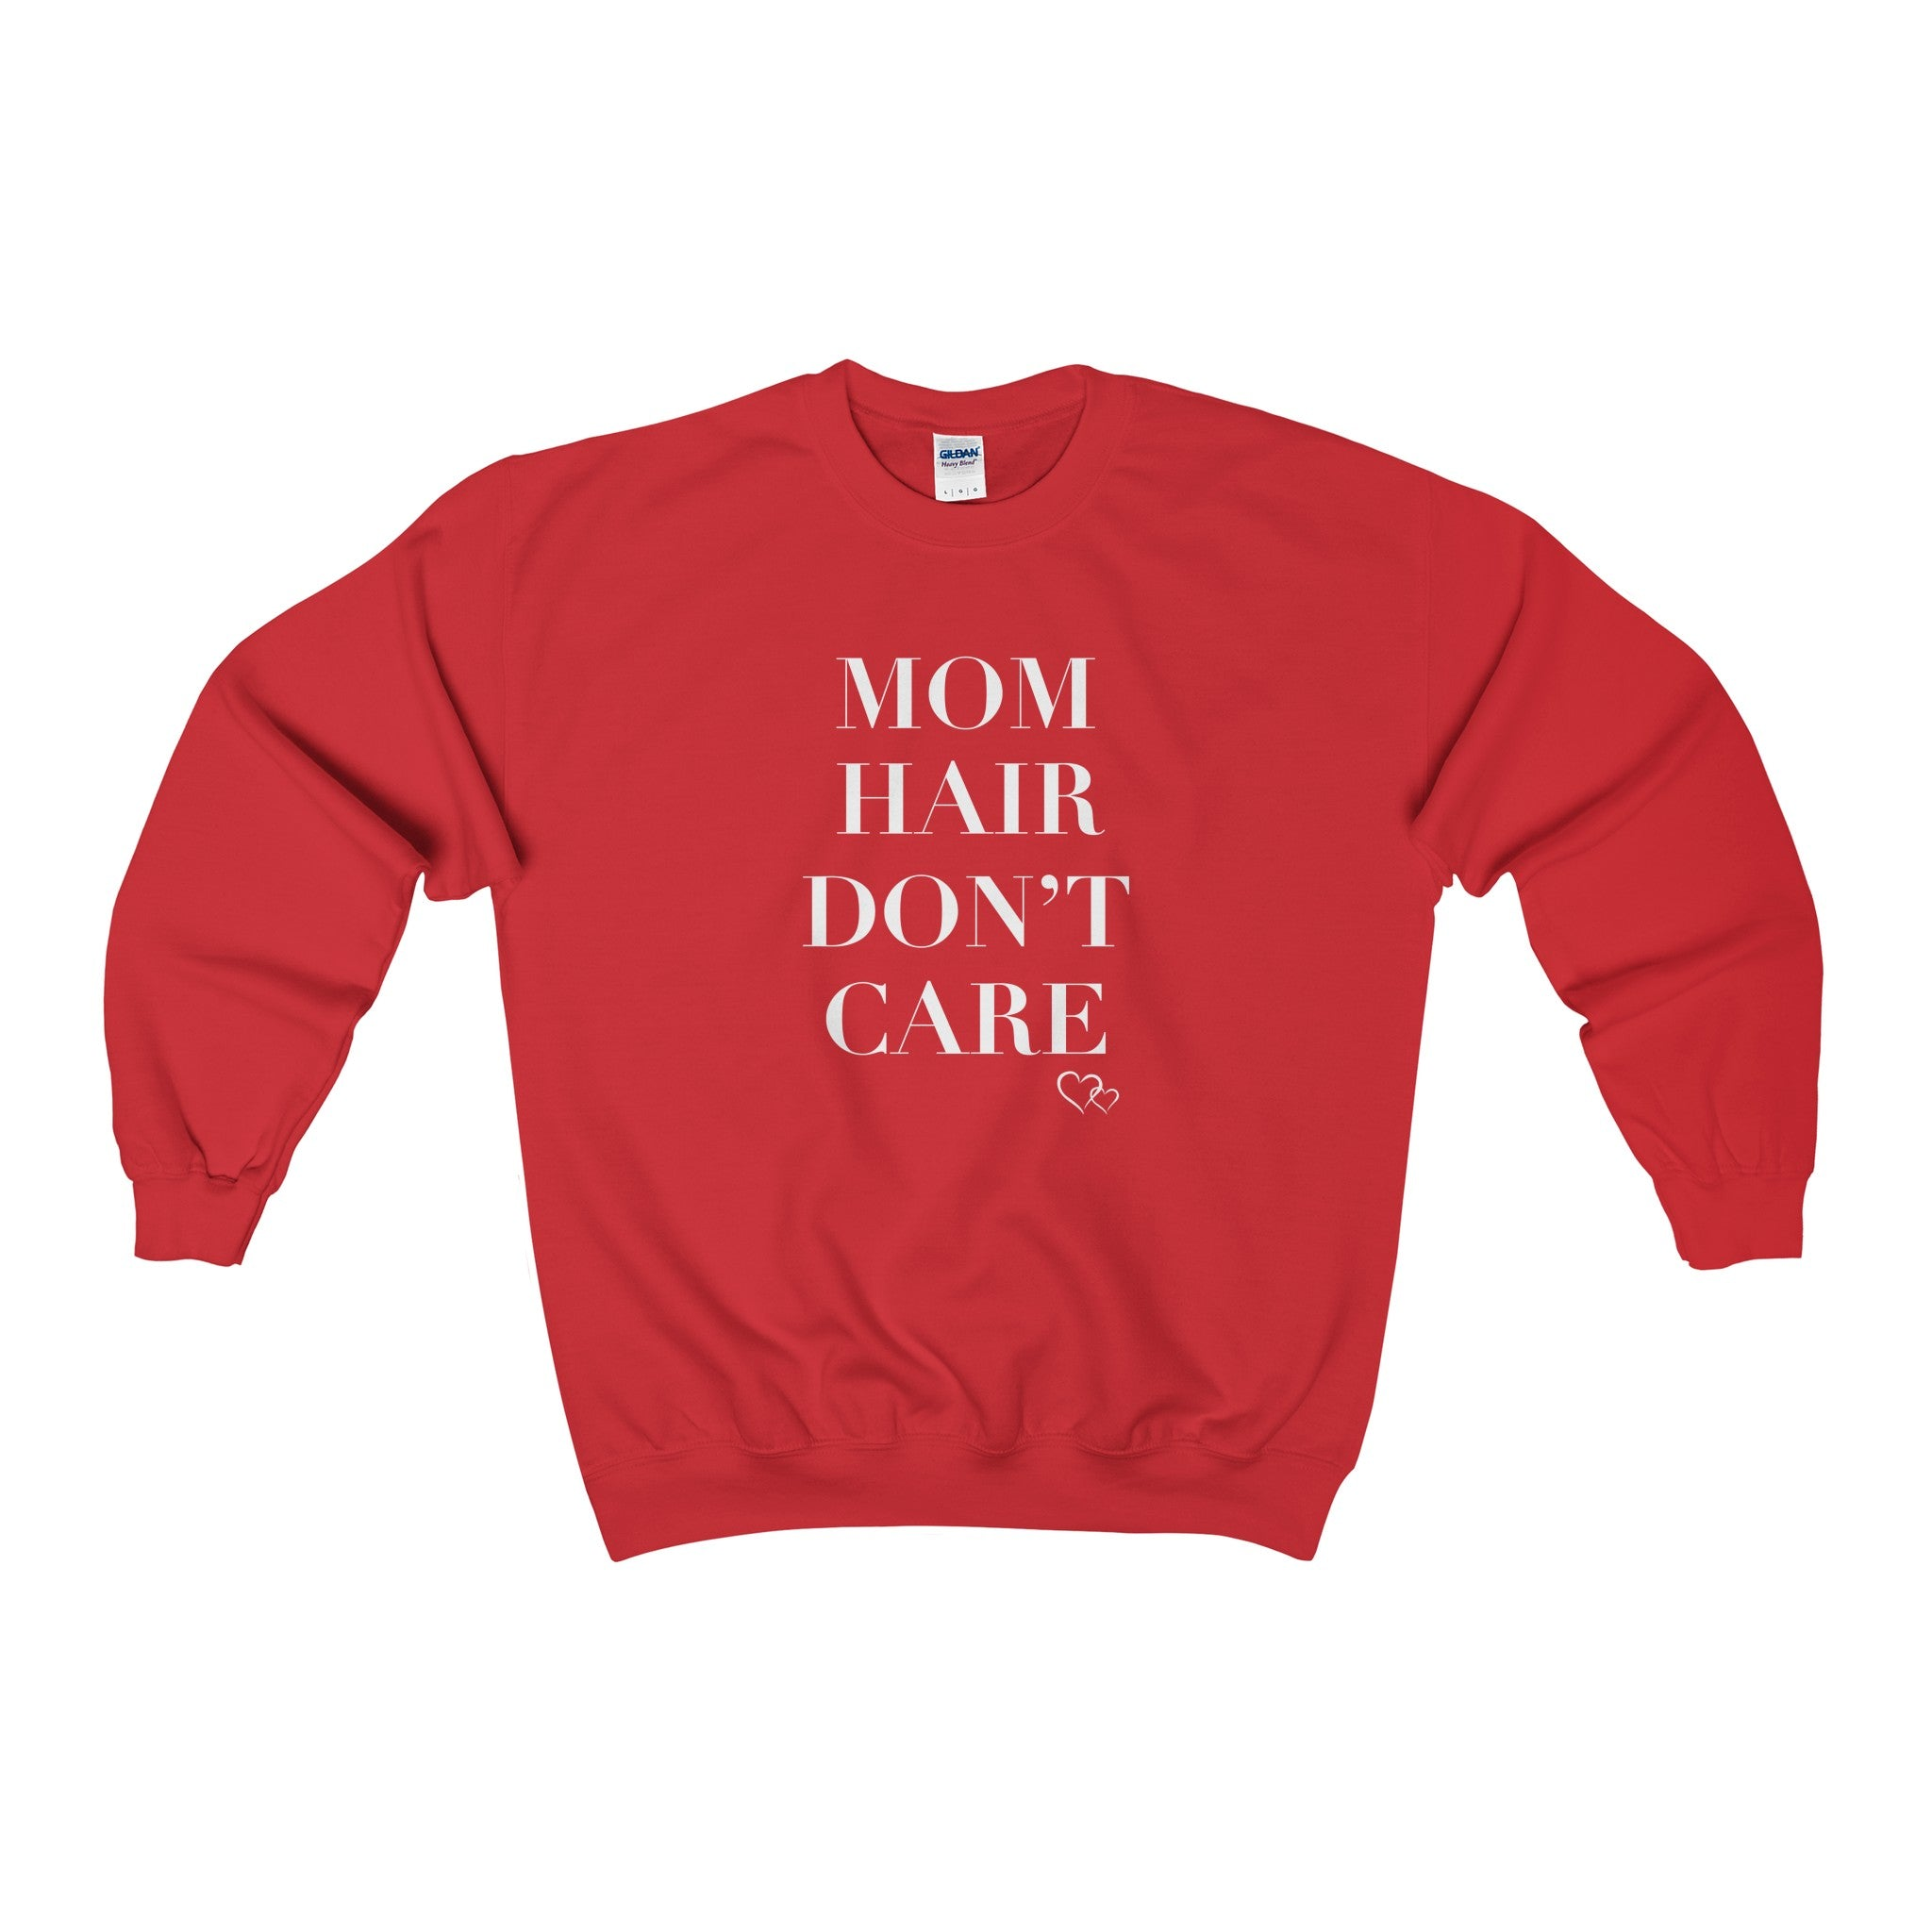 MOM HAIR DON'T CARE - Sweatshirt (Unisex)